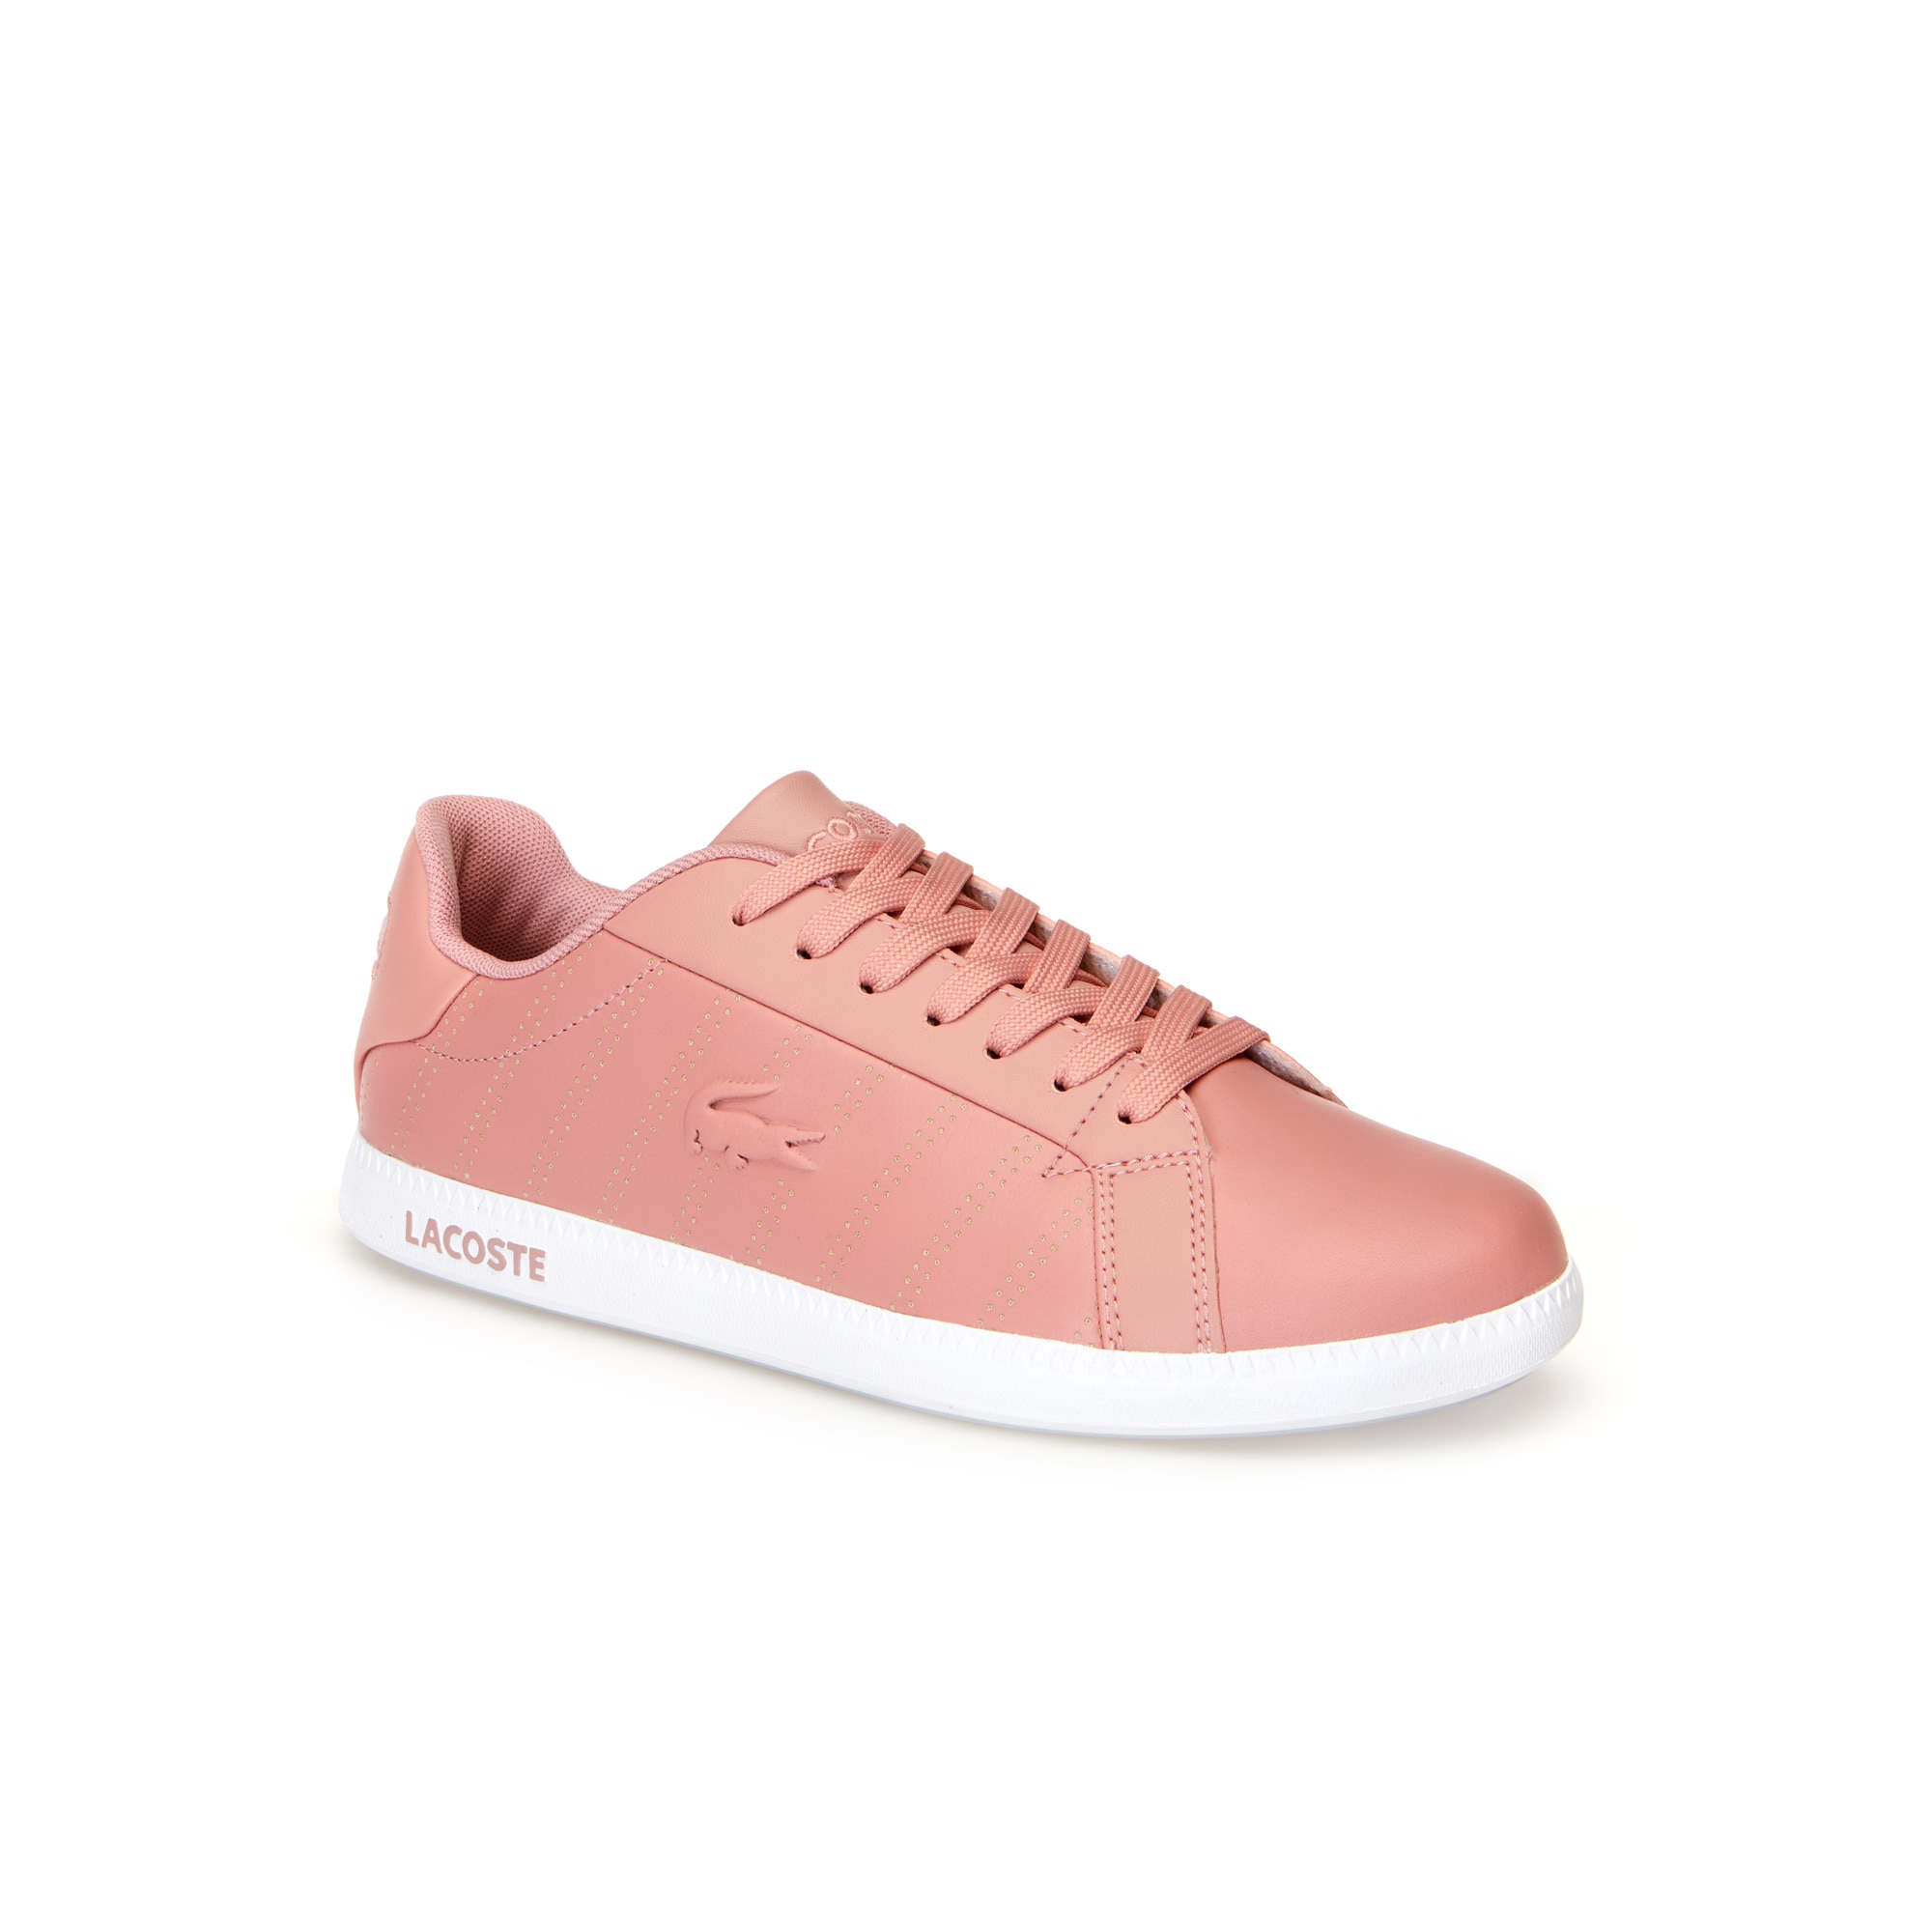 4a80f9403e All Lacoste Shoes | Footwear Collection | LACOSTE